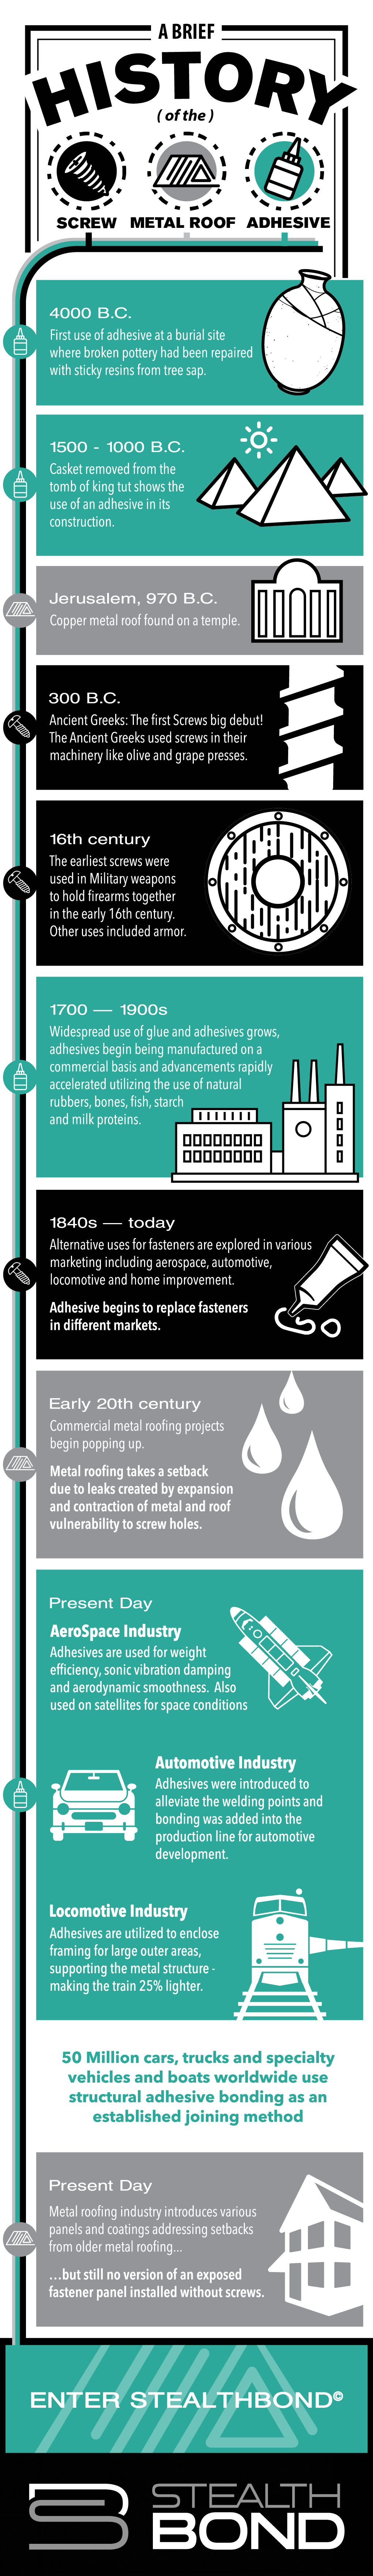 Stealthbond Adhesive Infographic - The History of the Screw, Metal Roof, and Adhesive